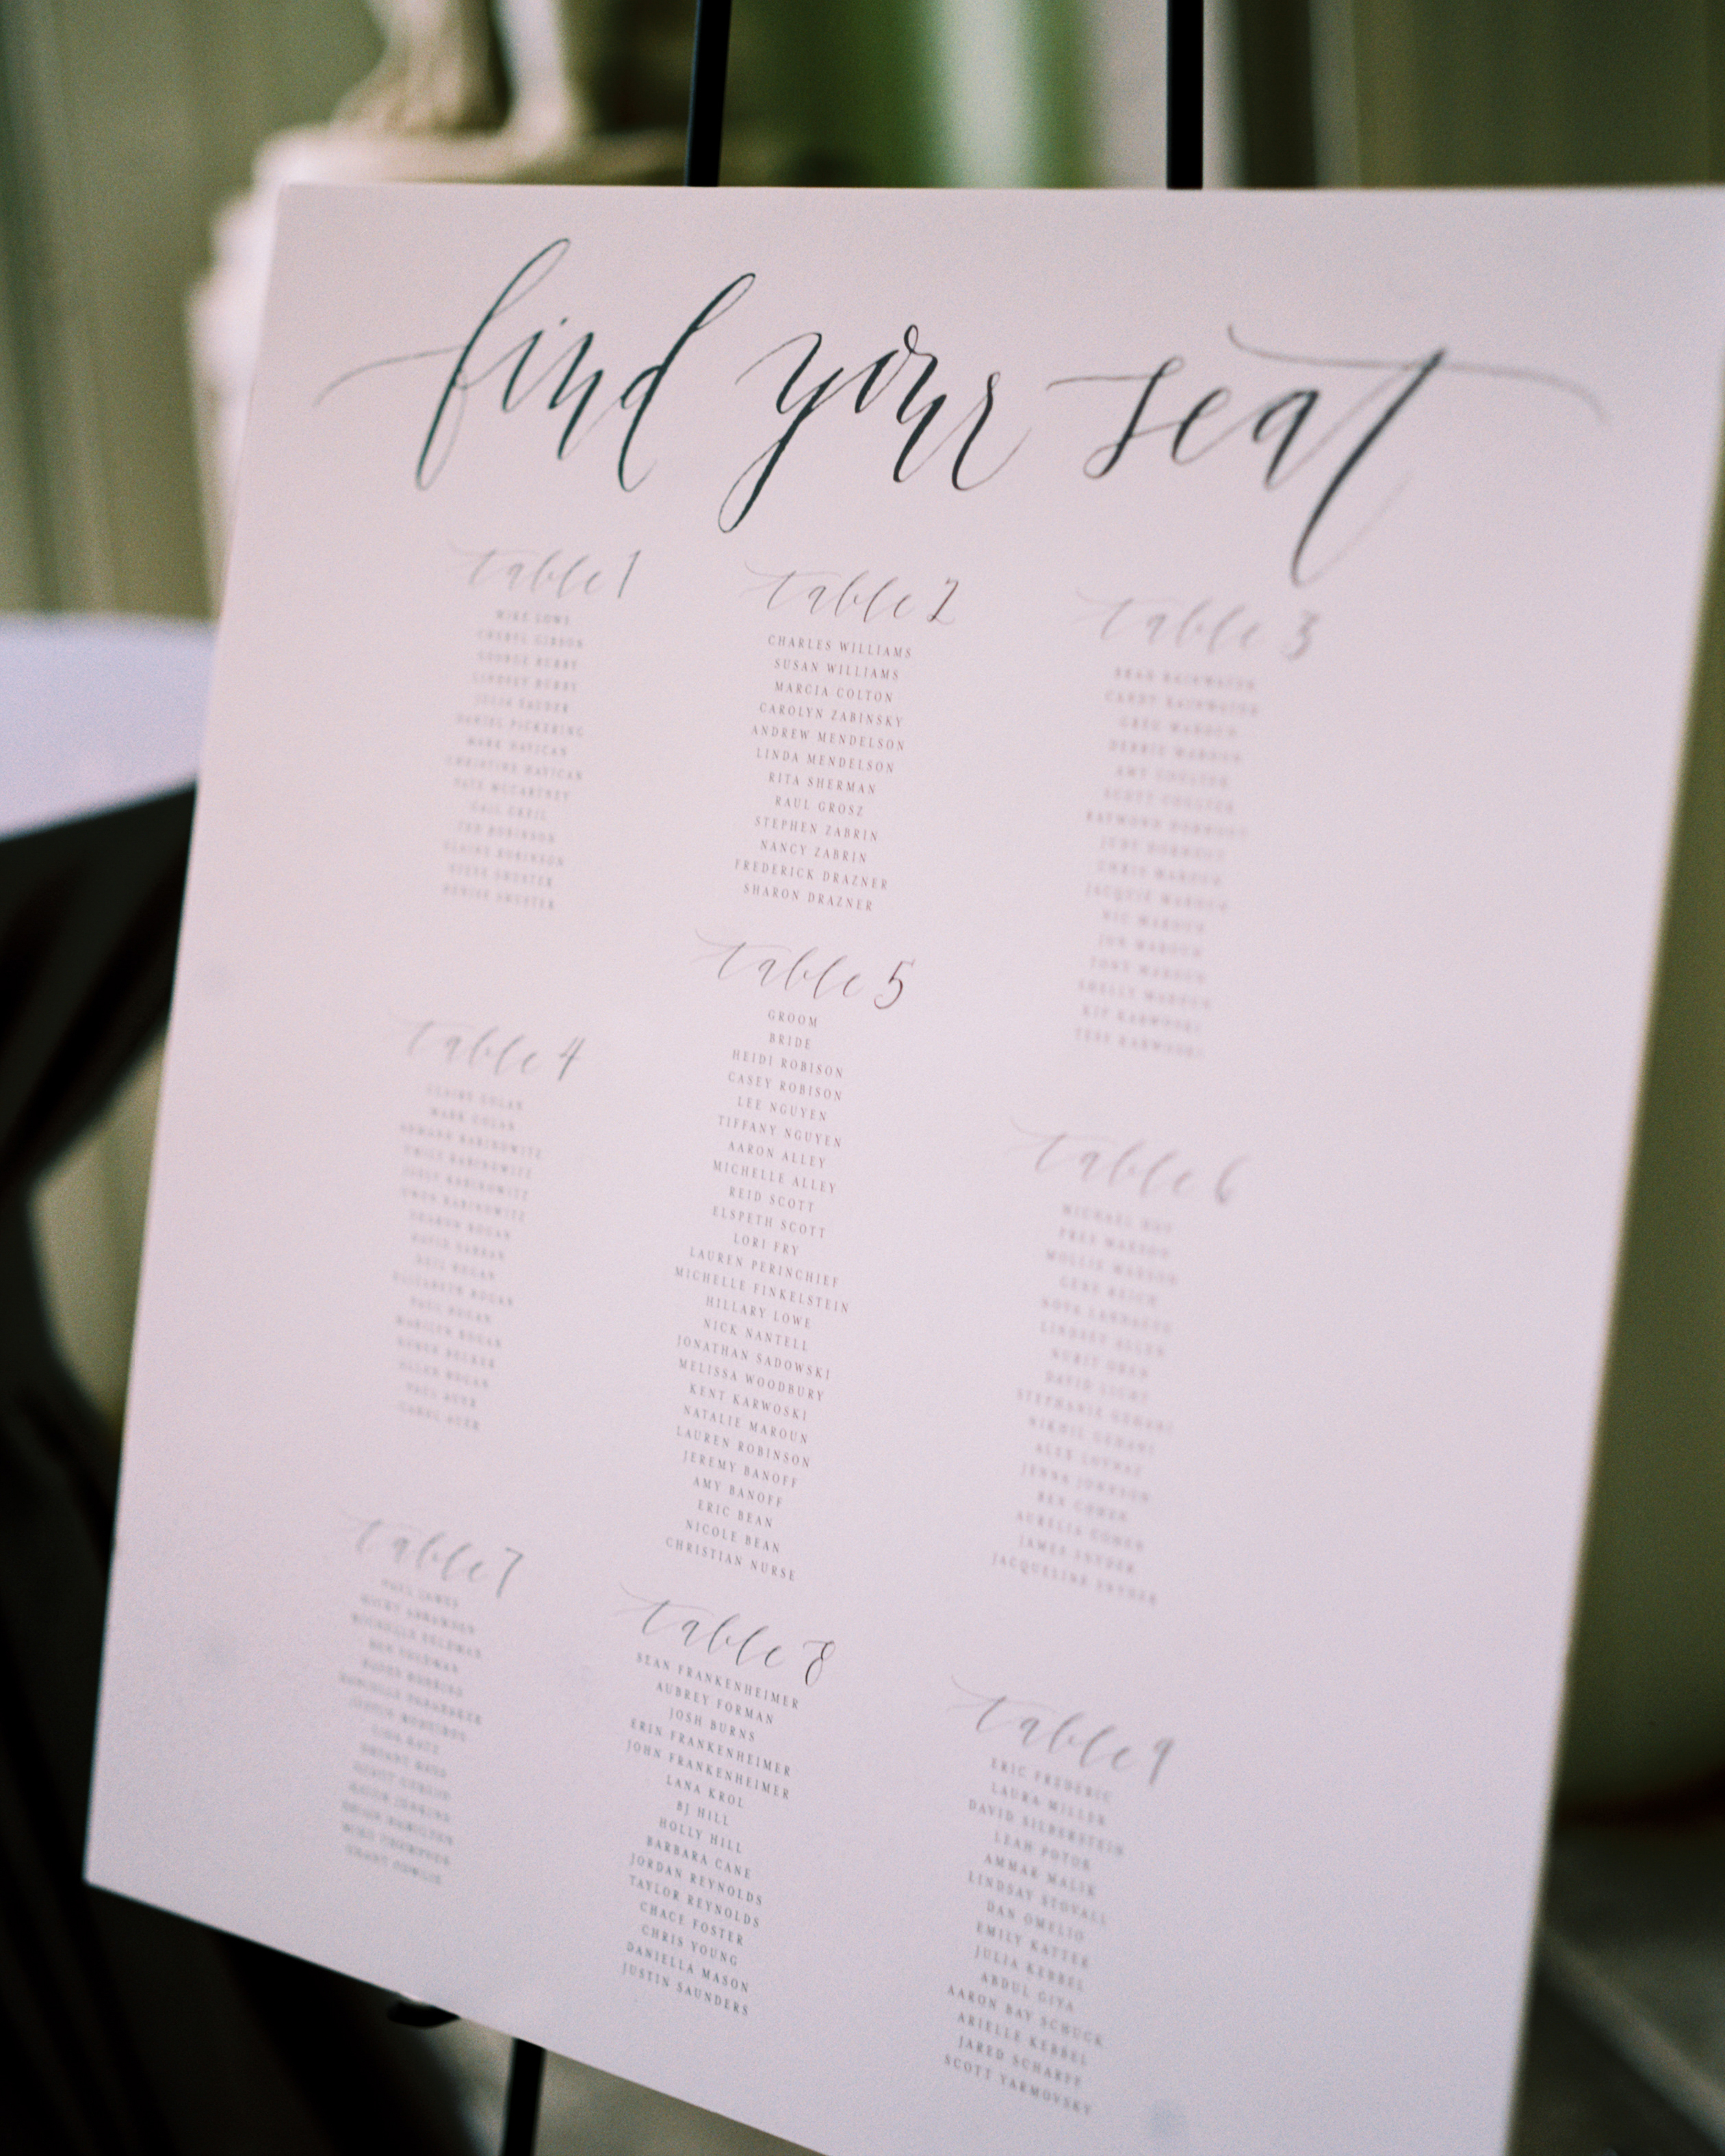 jackie-ross-wedding-seatingchart-094-s111775-0215.jpg